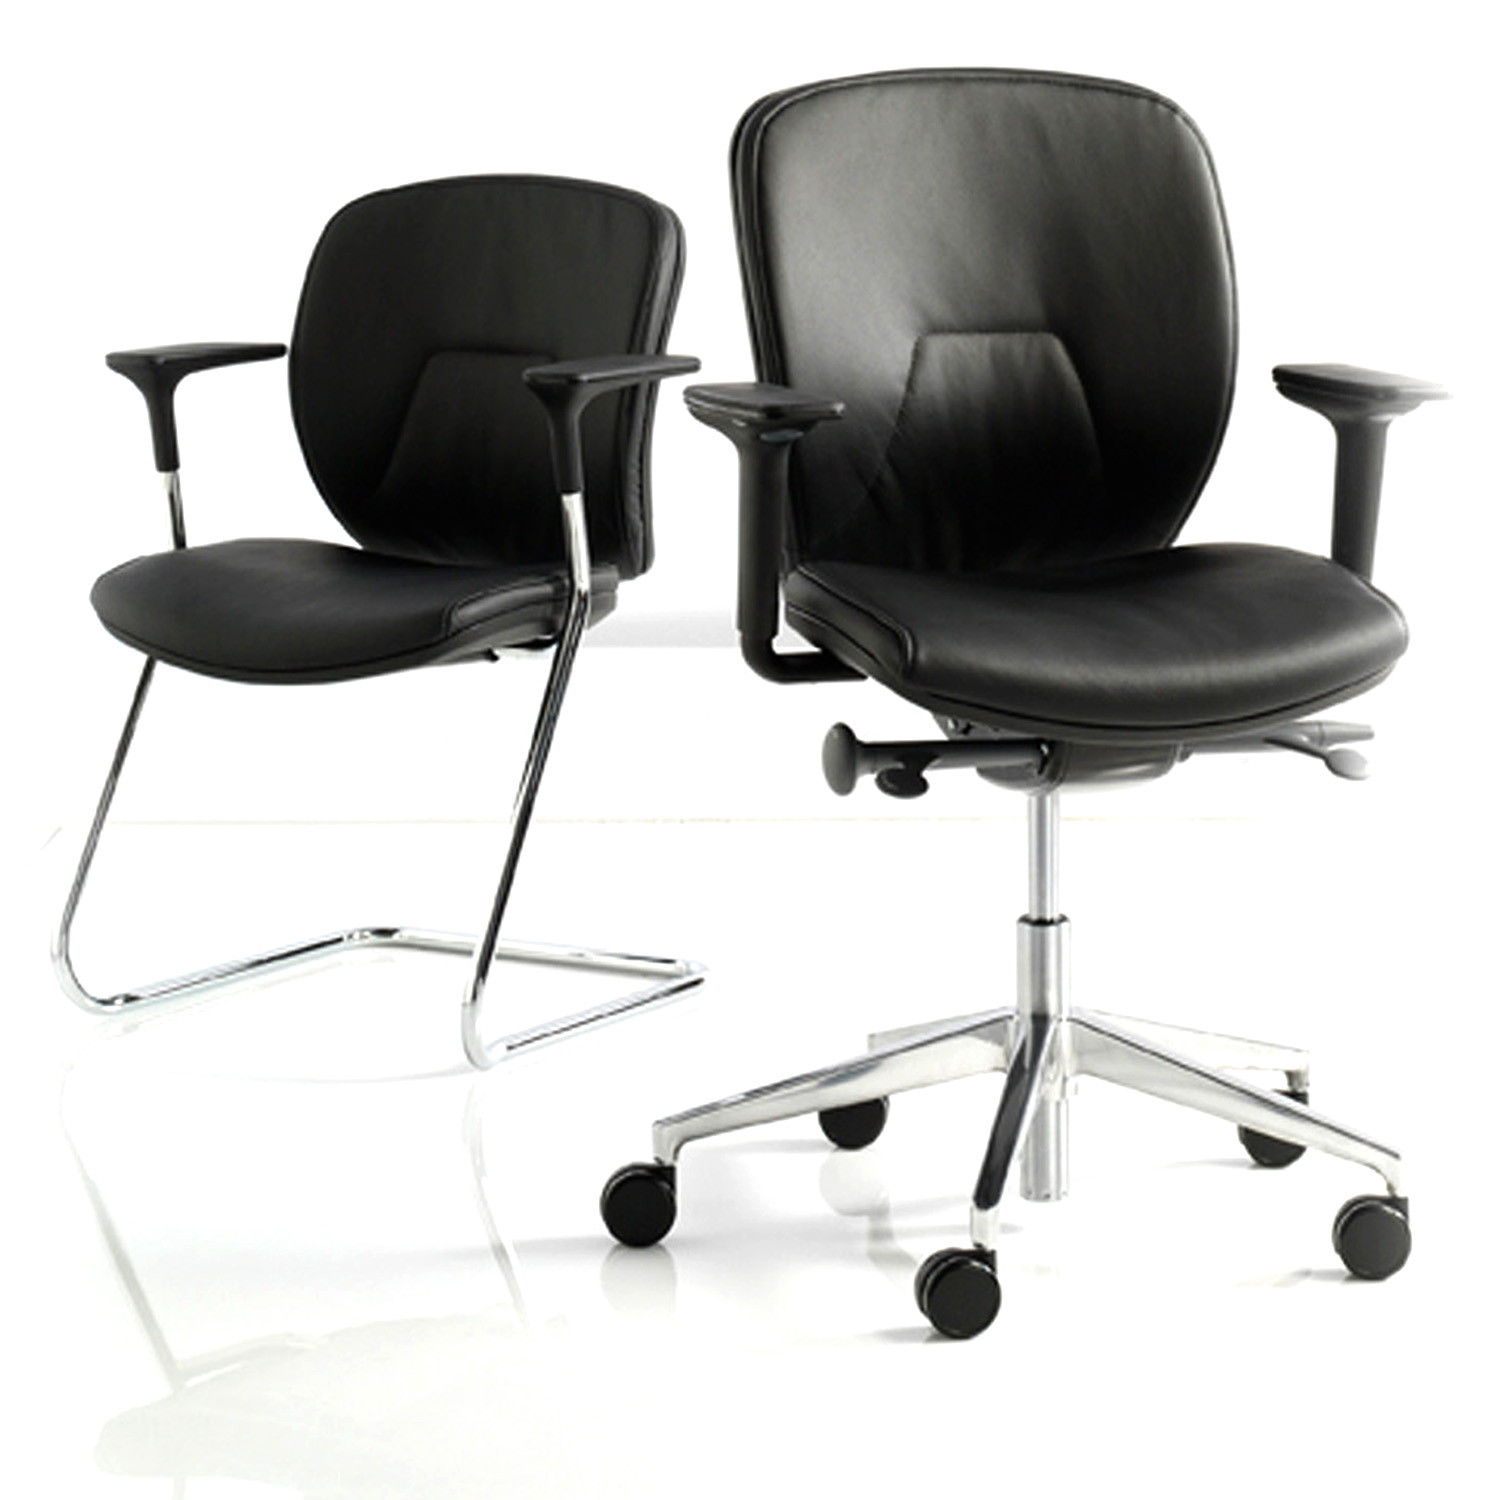 Joy Task Chair and Joy Visitor Chair